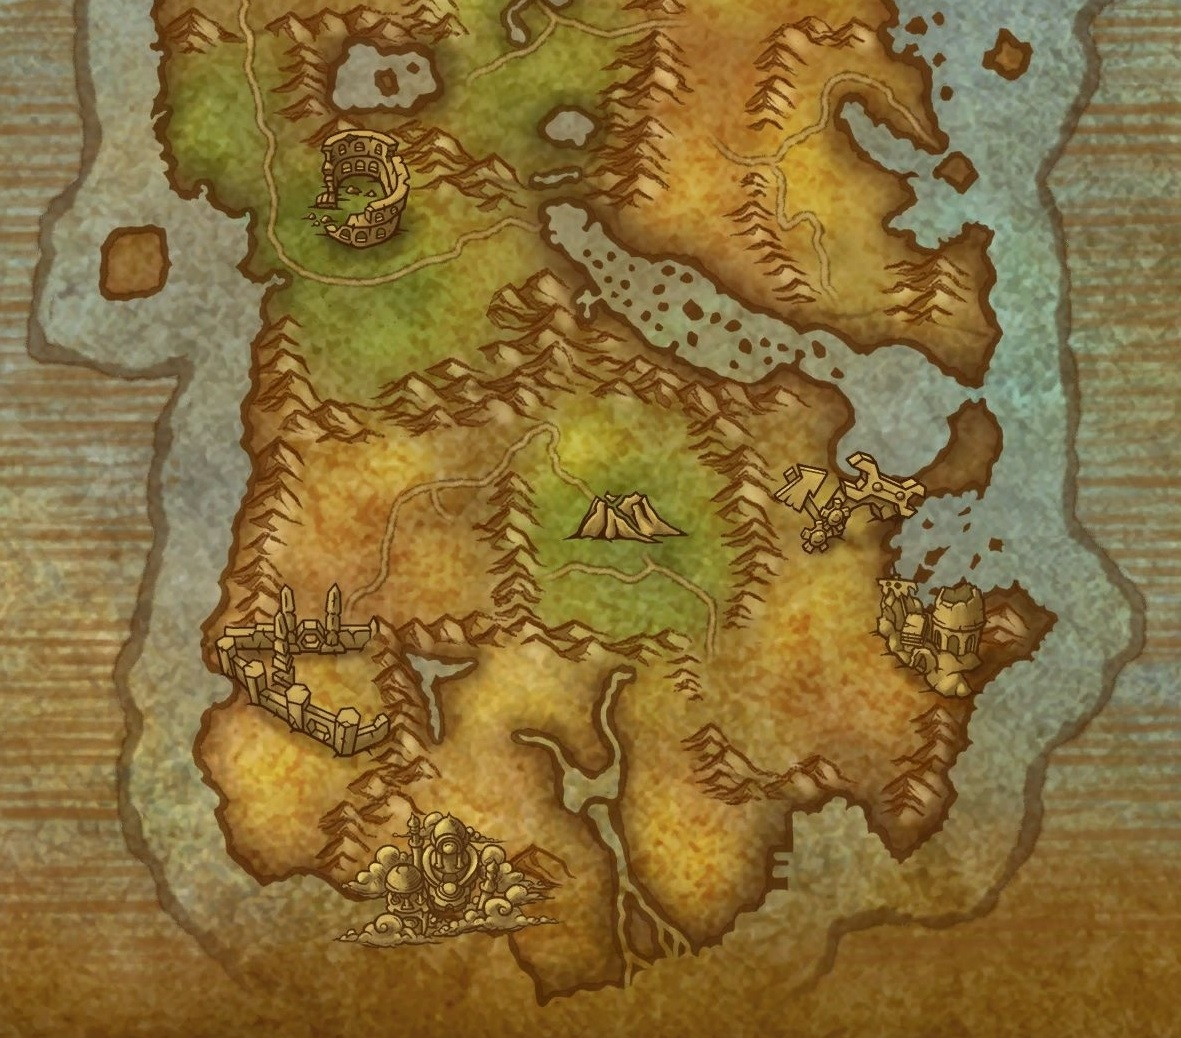 Kalimdor Map on molten core map, eastern kingdoms map, guild wars 2 gendarran fields map, dragonblight map, stormwind map, undercity map, ashenvale map, azeroth map, netherstorm map, darkshore map, desolace map, dustwallow marsh map, thousand needles map, draenor map, orgrimmar map, lordaeron map, wrath of the lich king map, emerald dream map, wow fossil dig sites map, bloodmyst isle map,